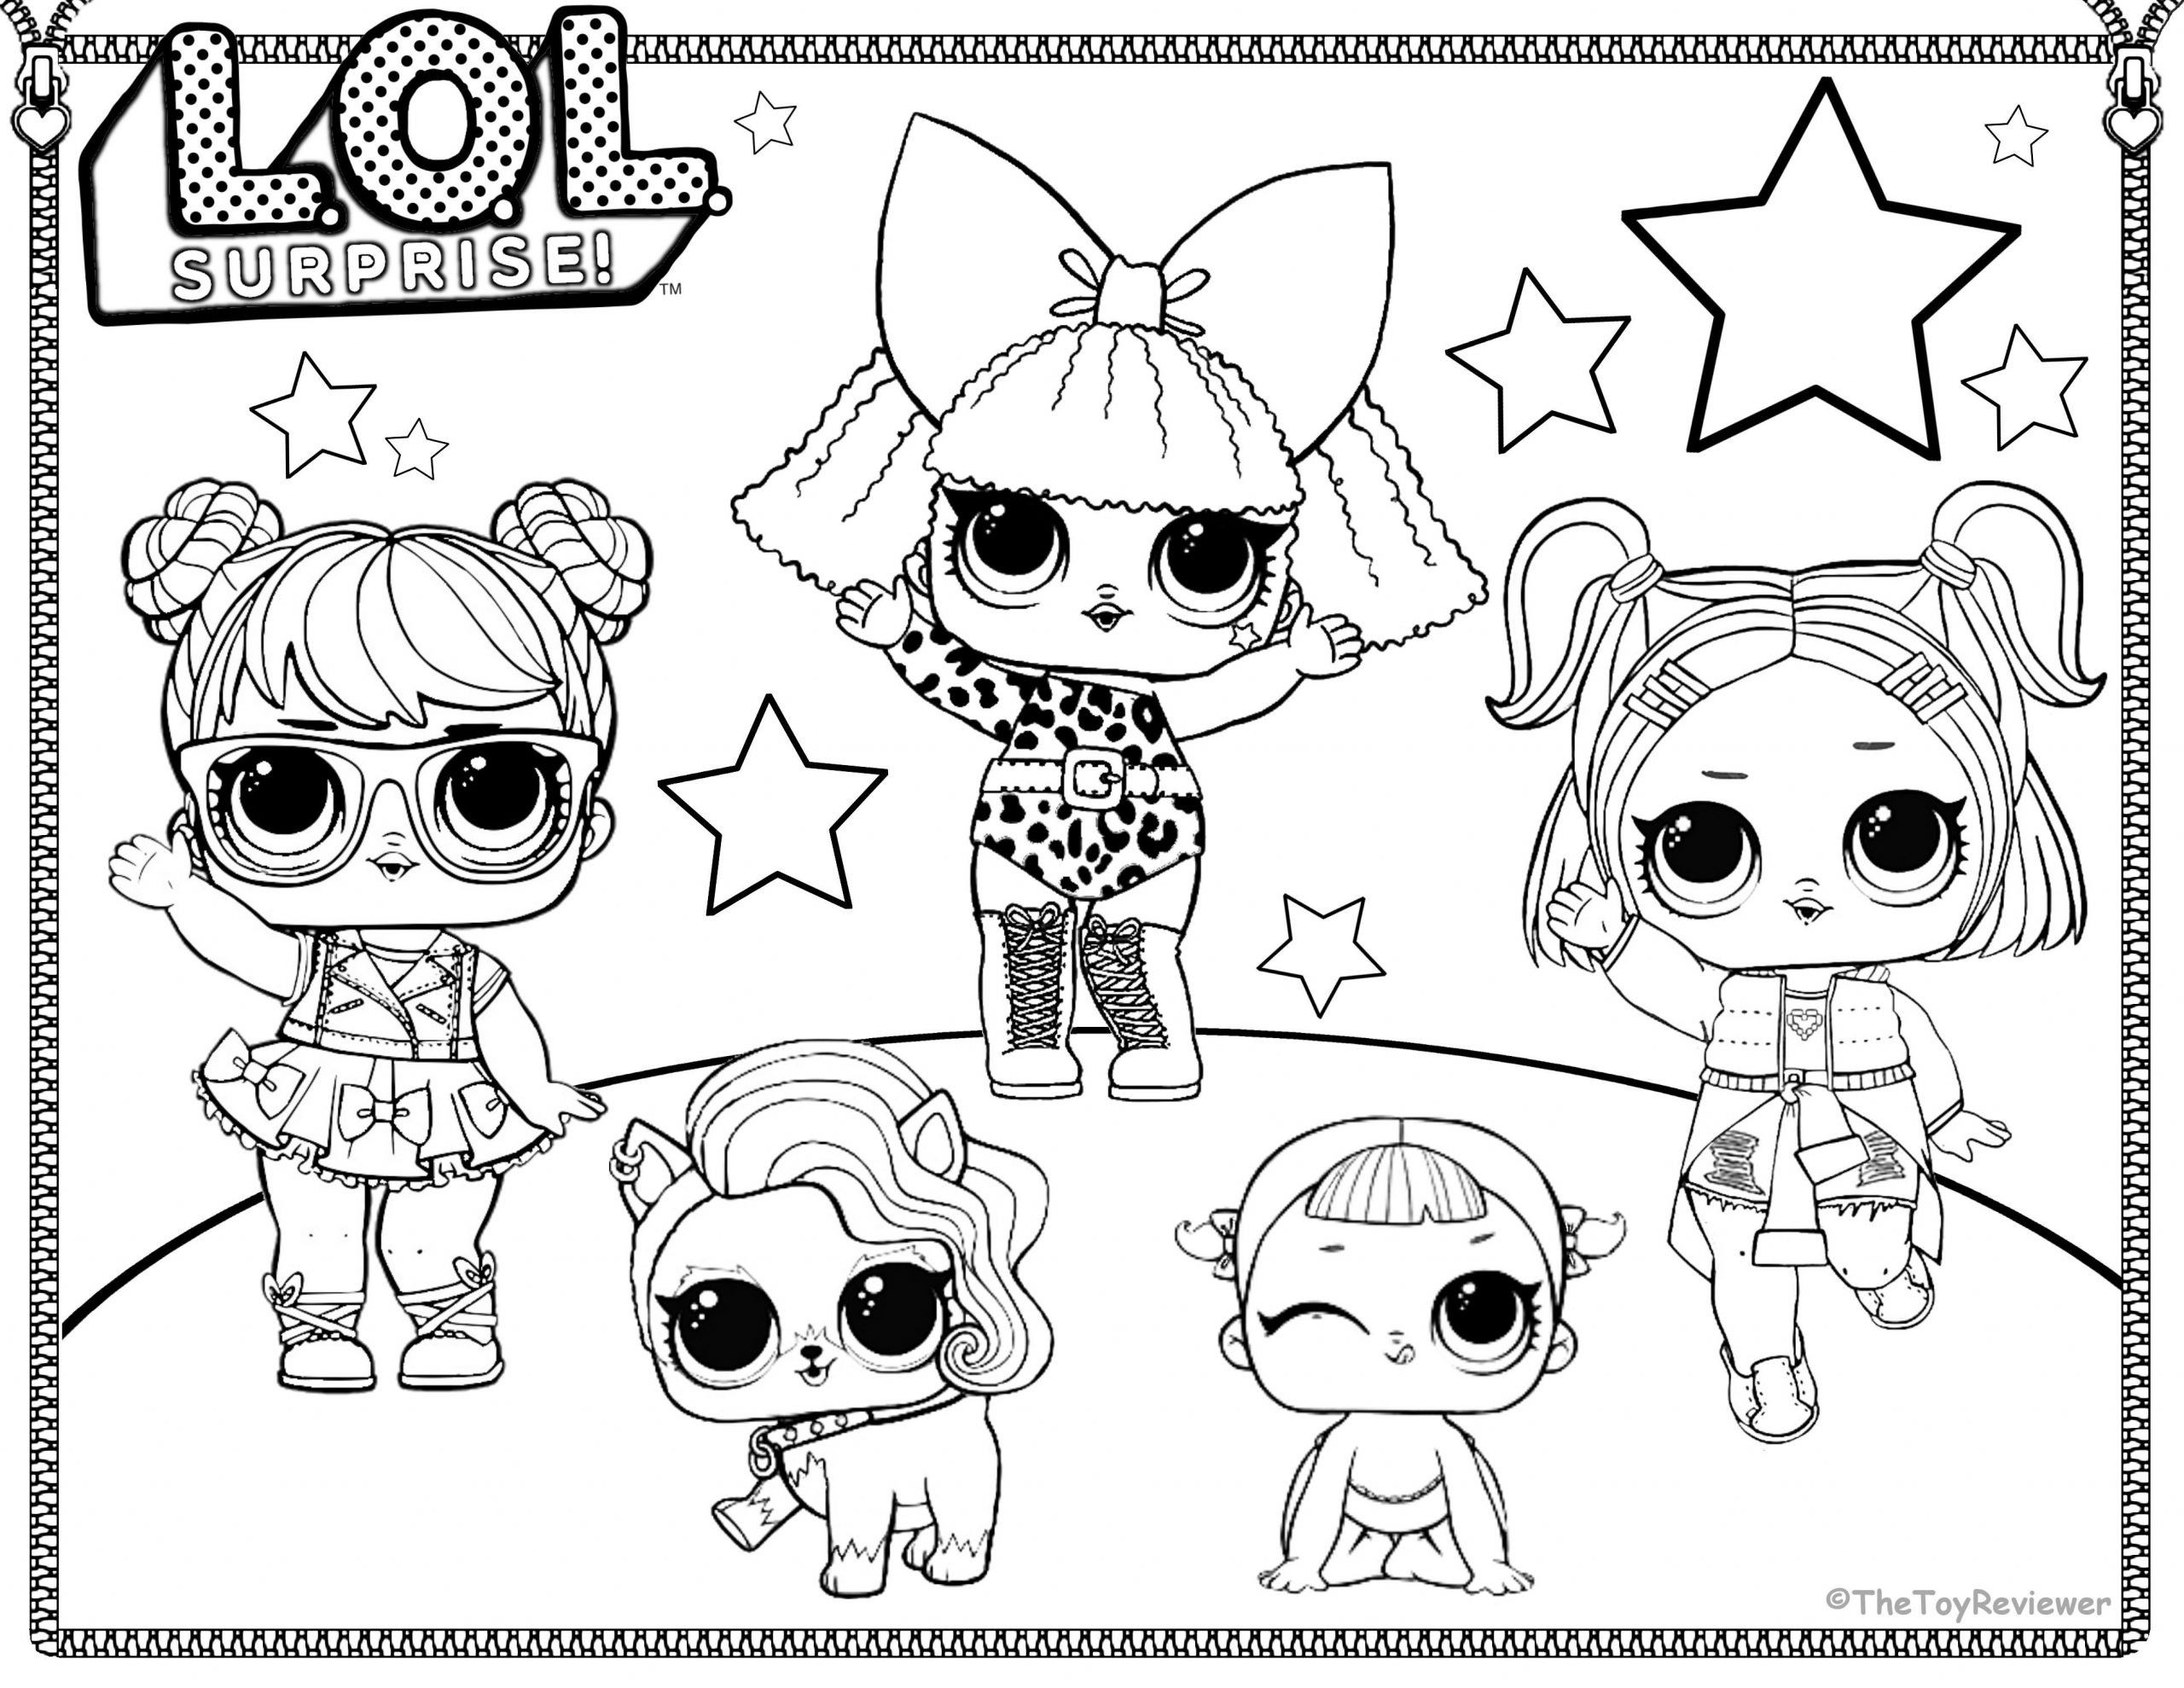 Coloring Rocks In 2020 Baby Coloring Pages Bear Coloring Pages Zoo Coloring Pages